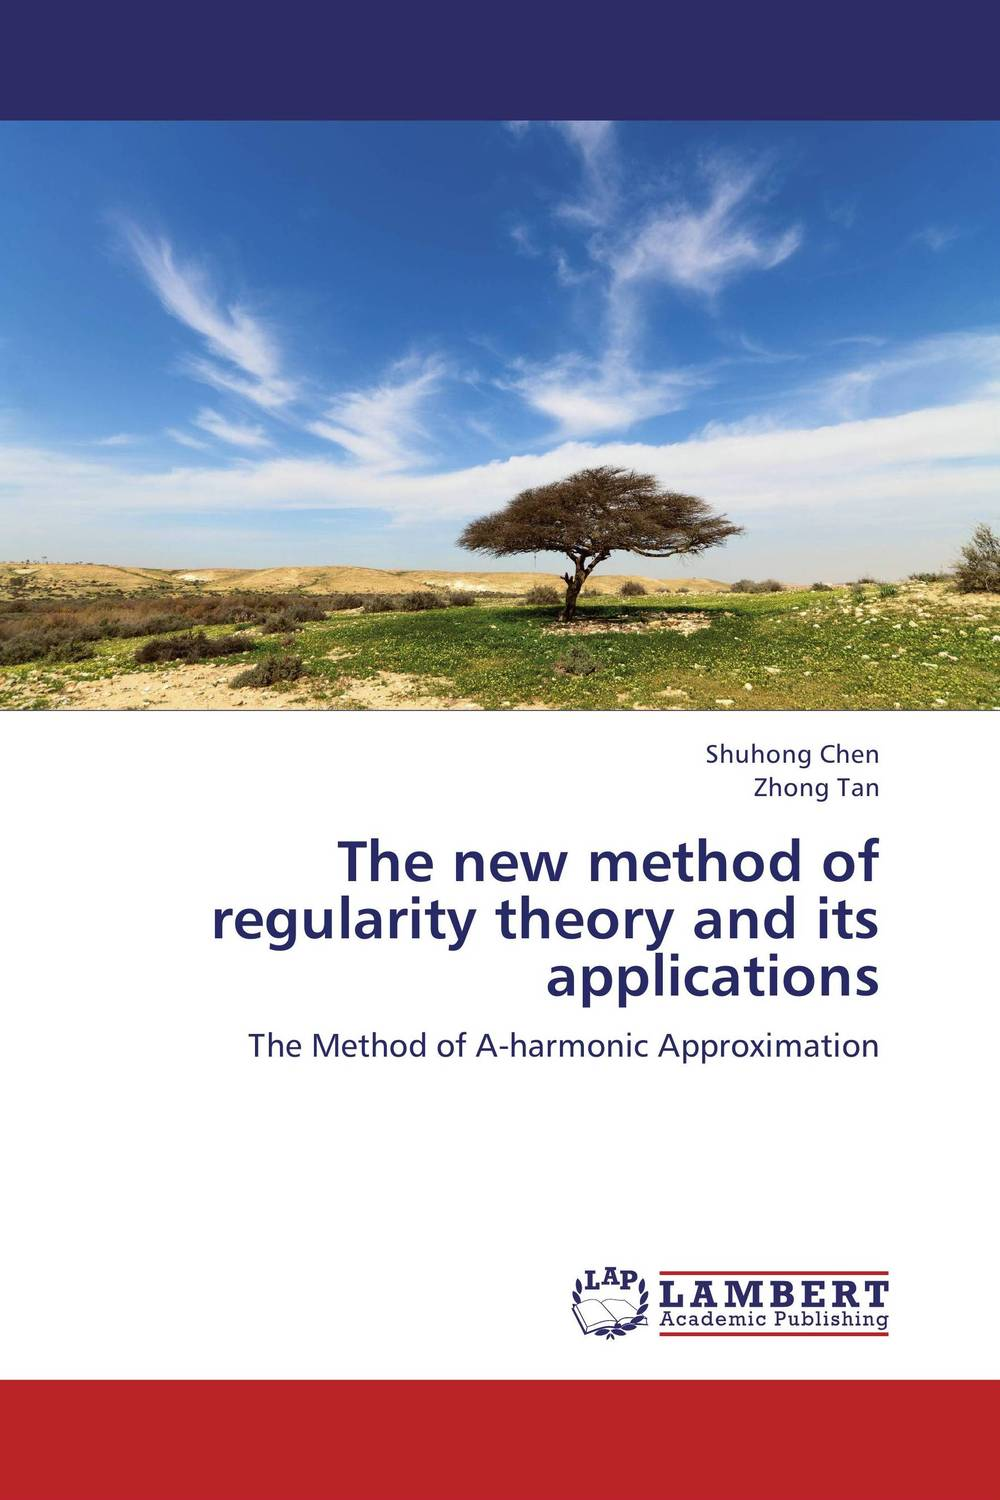 The new method of regularity theory and its applications